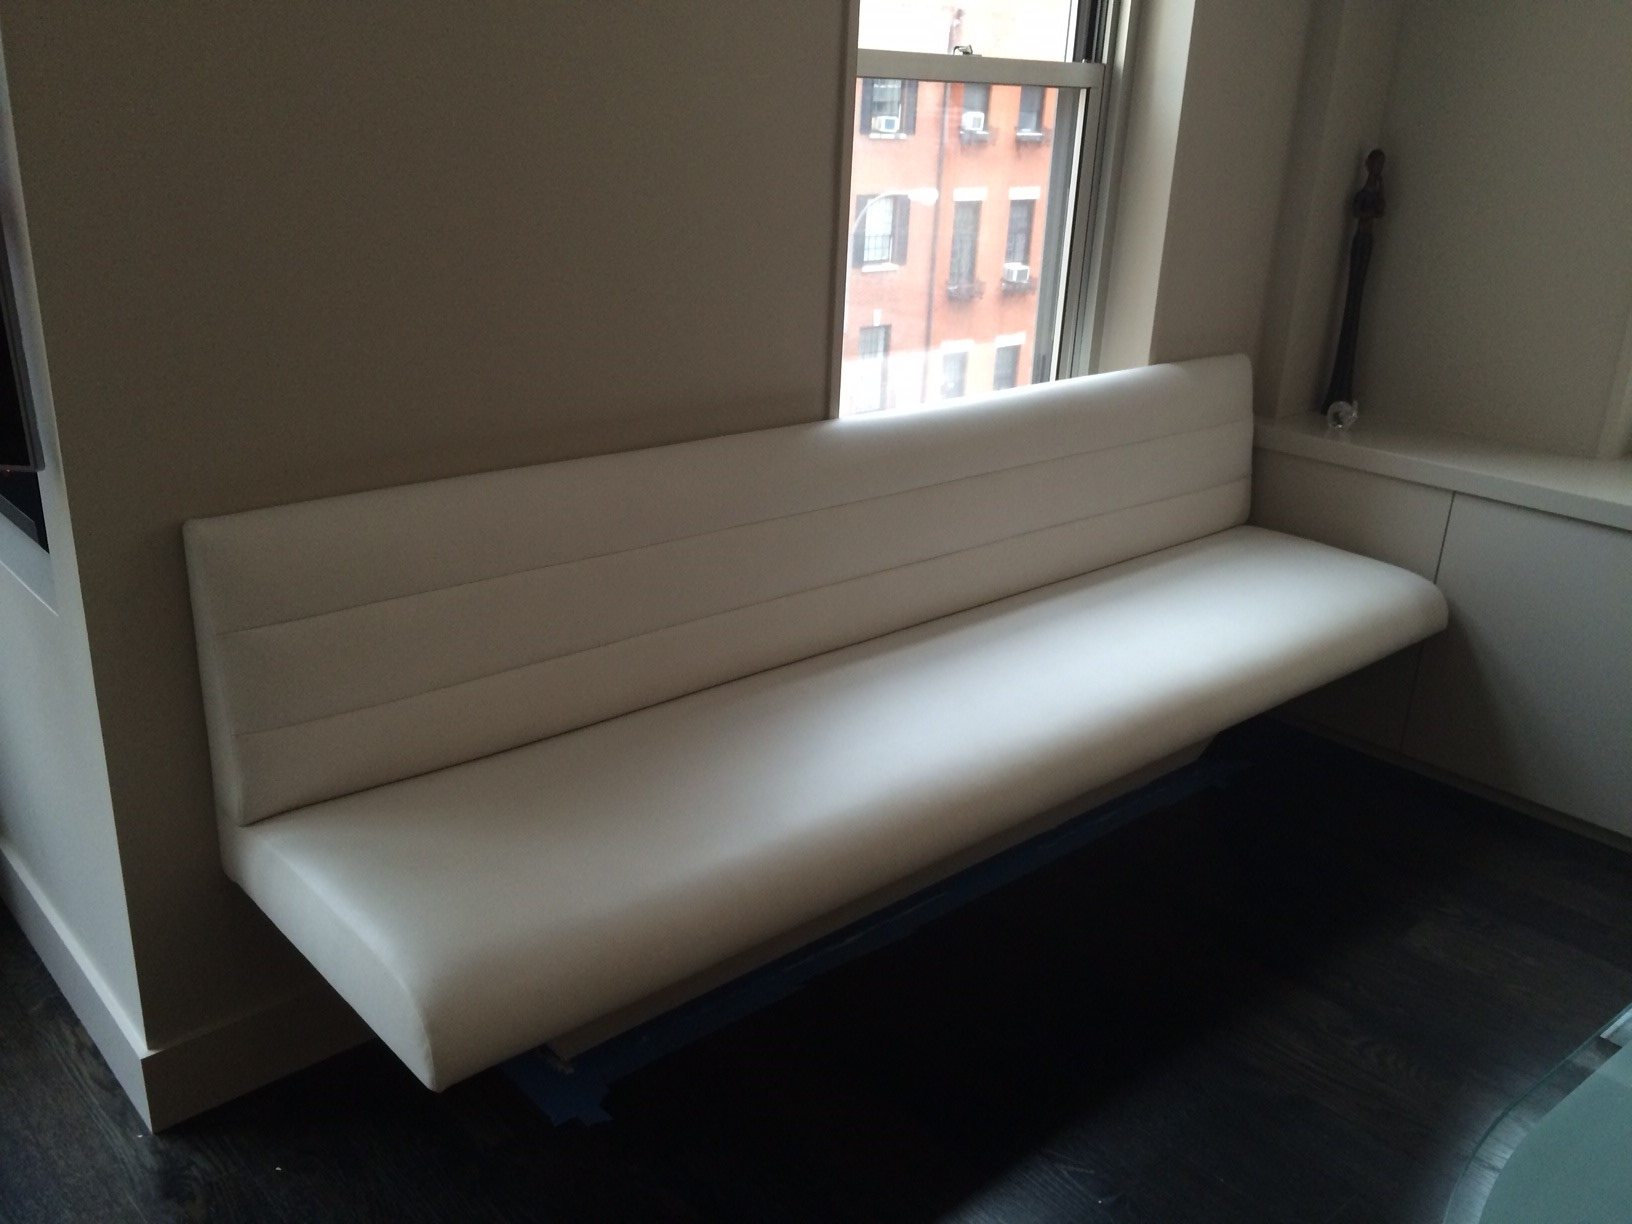 Dr Sofa Commercial Custom Made Banquette Dr Sofa Throughout Customized Sofas (Image 11 of 15)